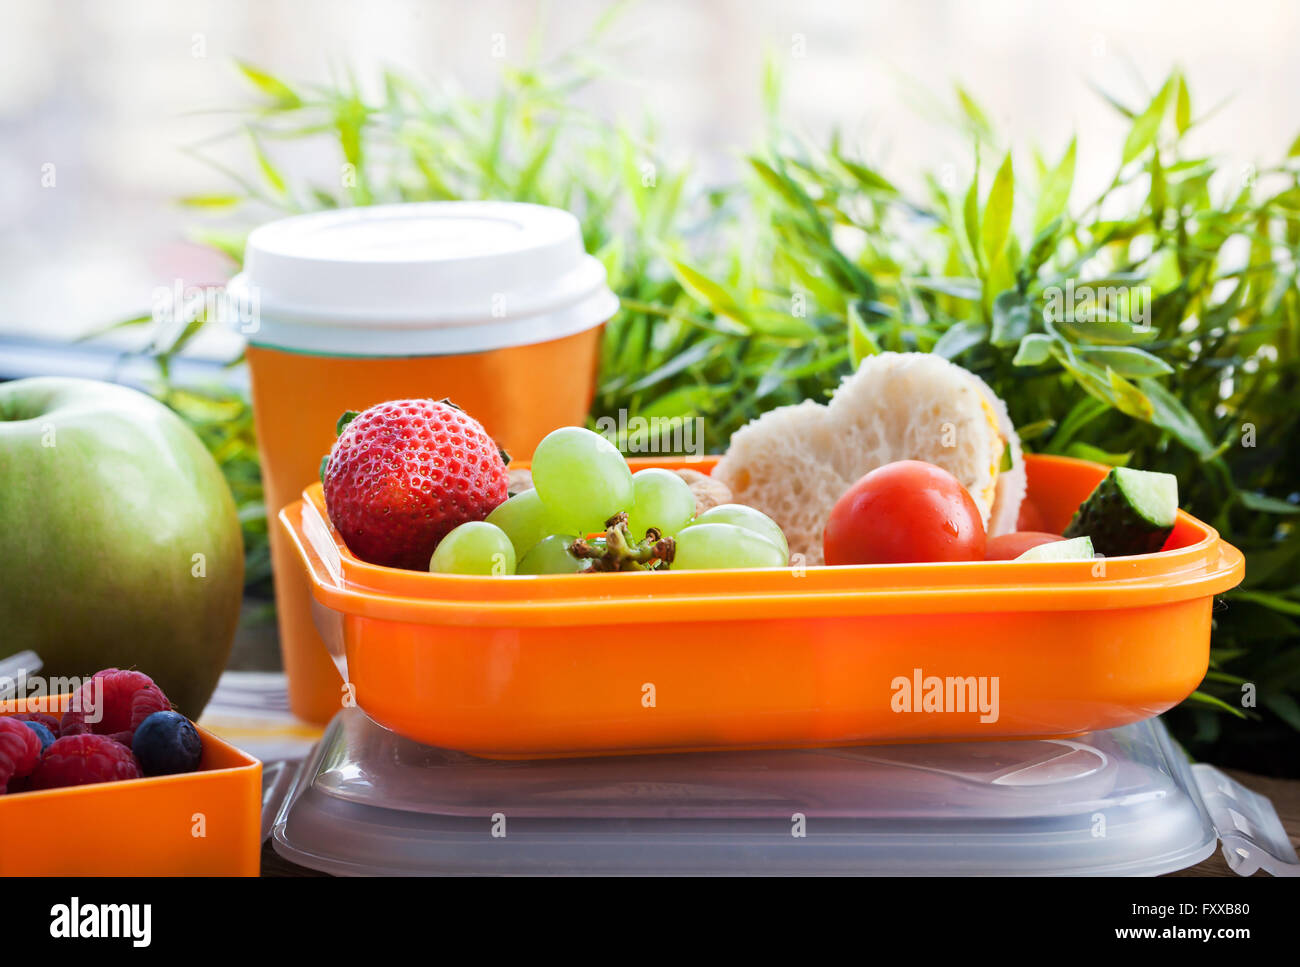 Lunch box for kids with sandwich, cookies, fresh veggies and fruits - Stock Image